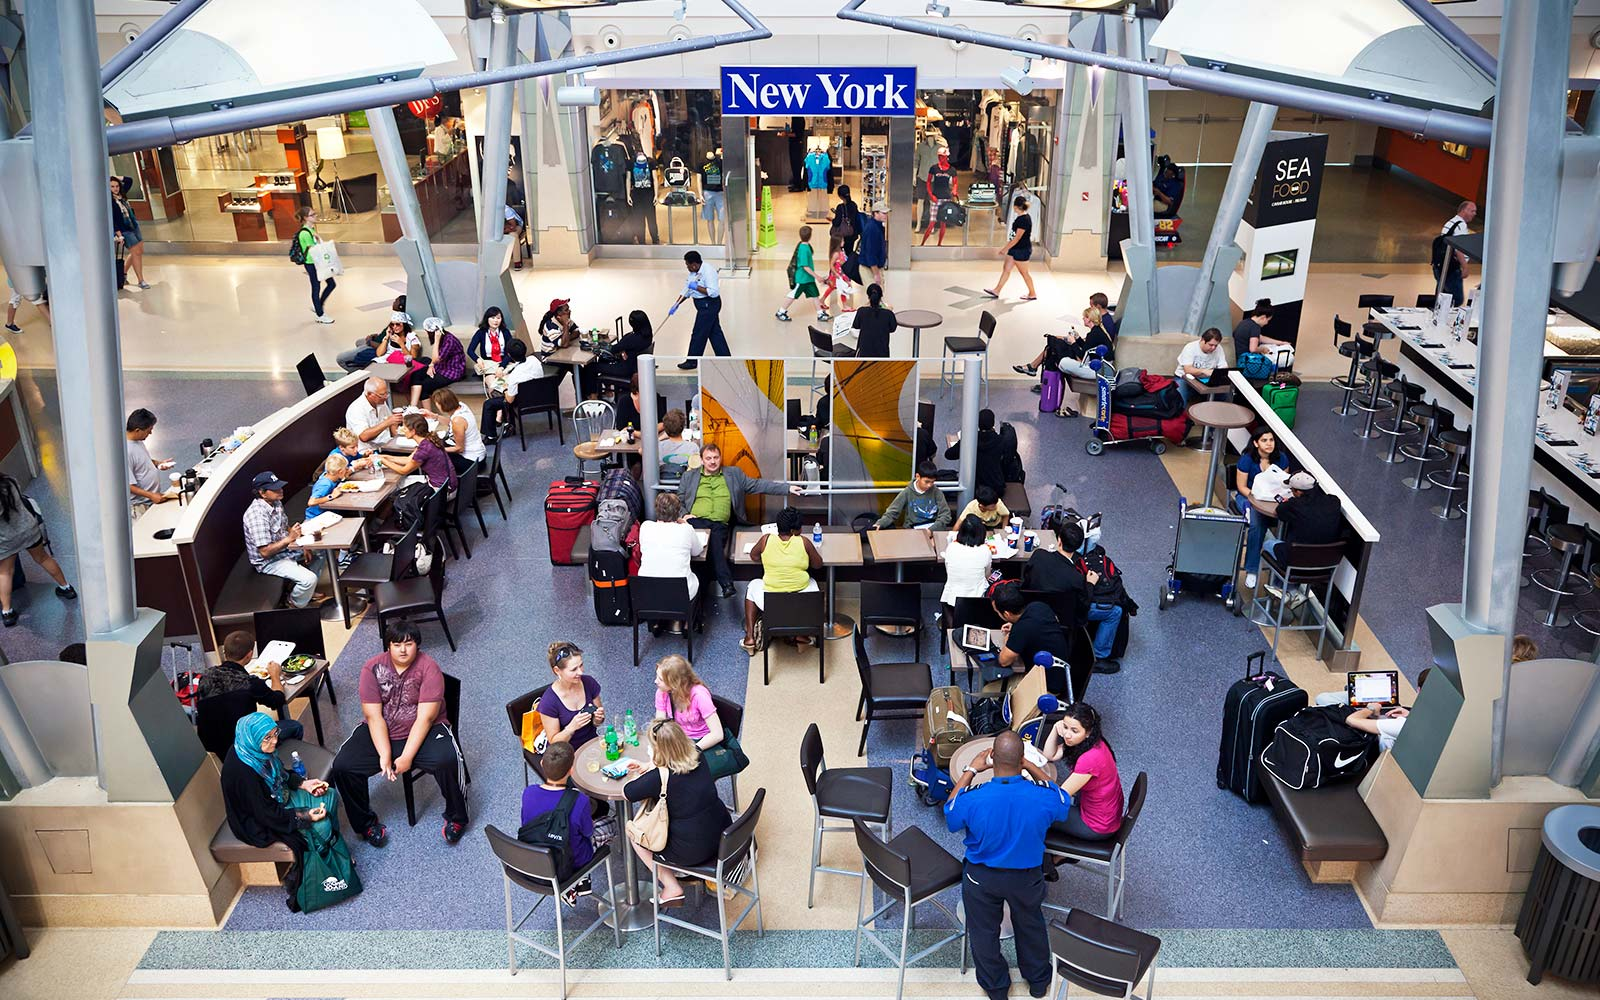 JFK Airport's Central Plaza food court dining New York City